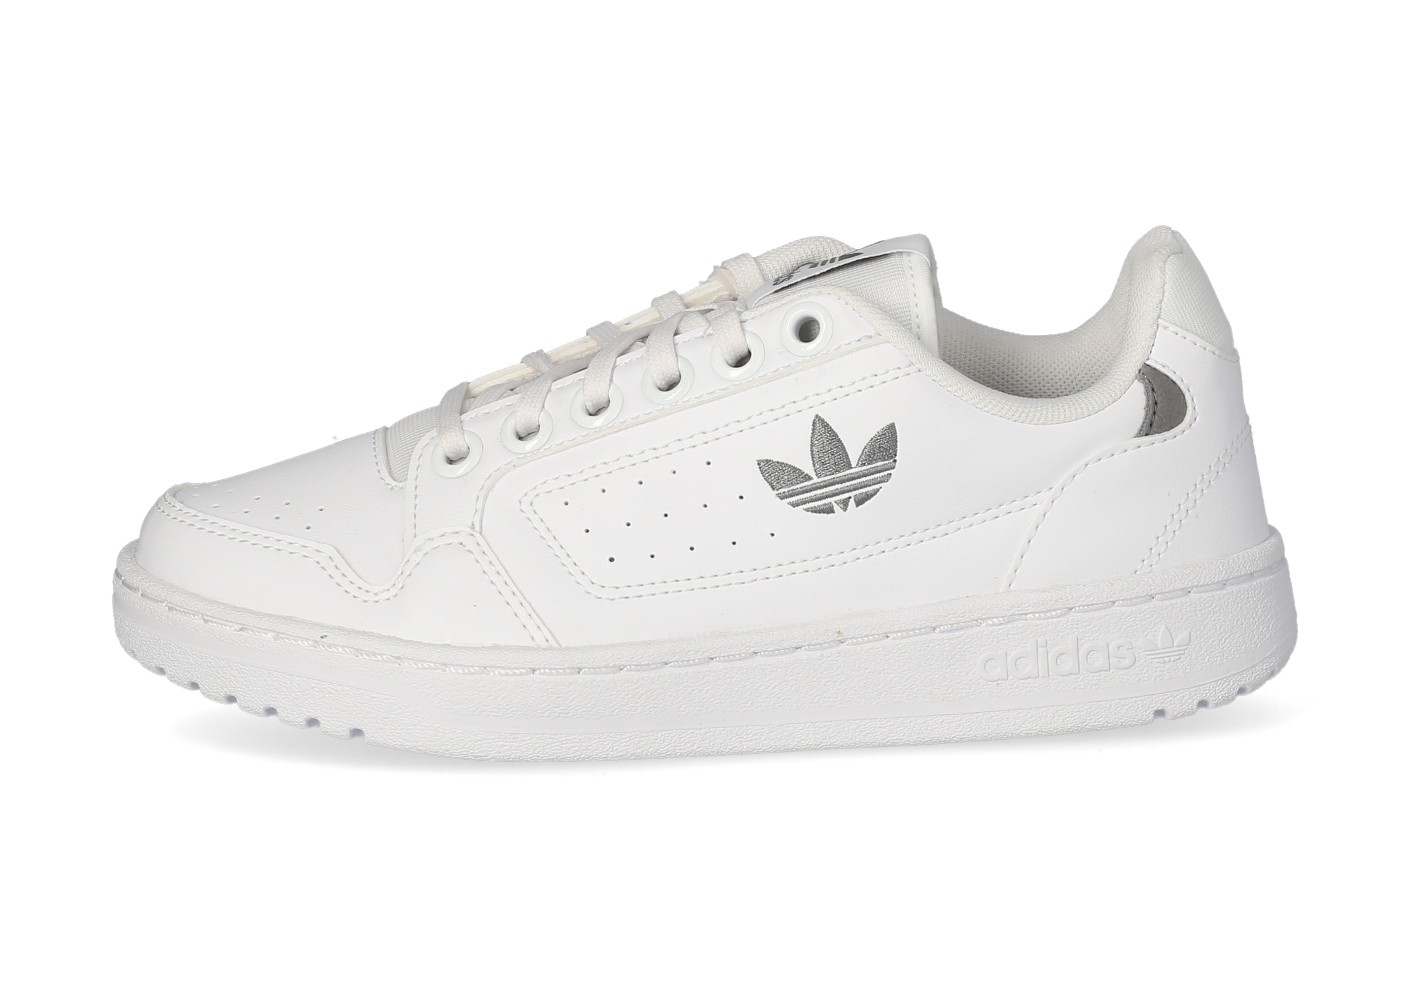 adidas NY 90 Femme blanche et grise - Chaussures adidas - Chausport